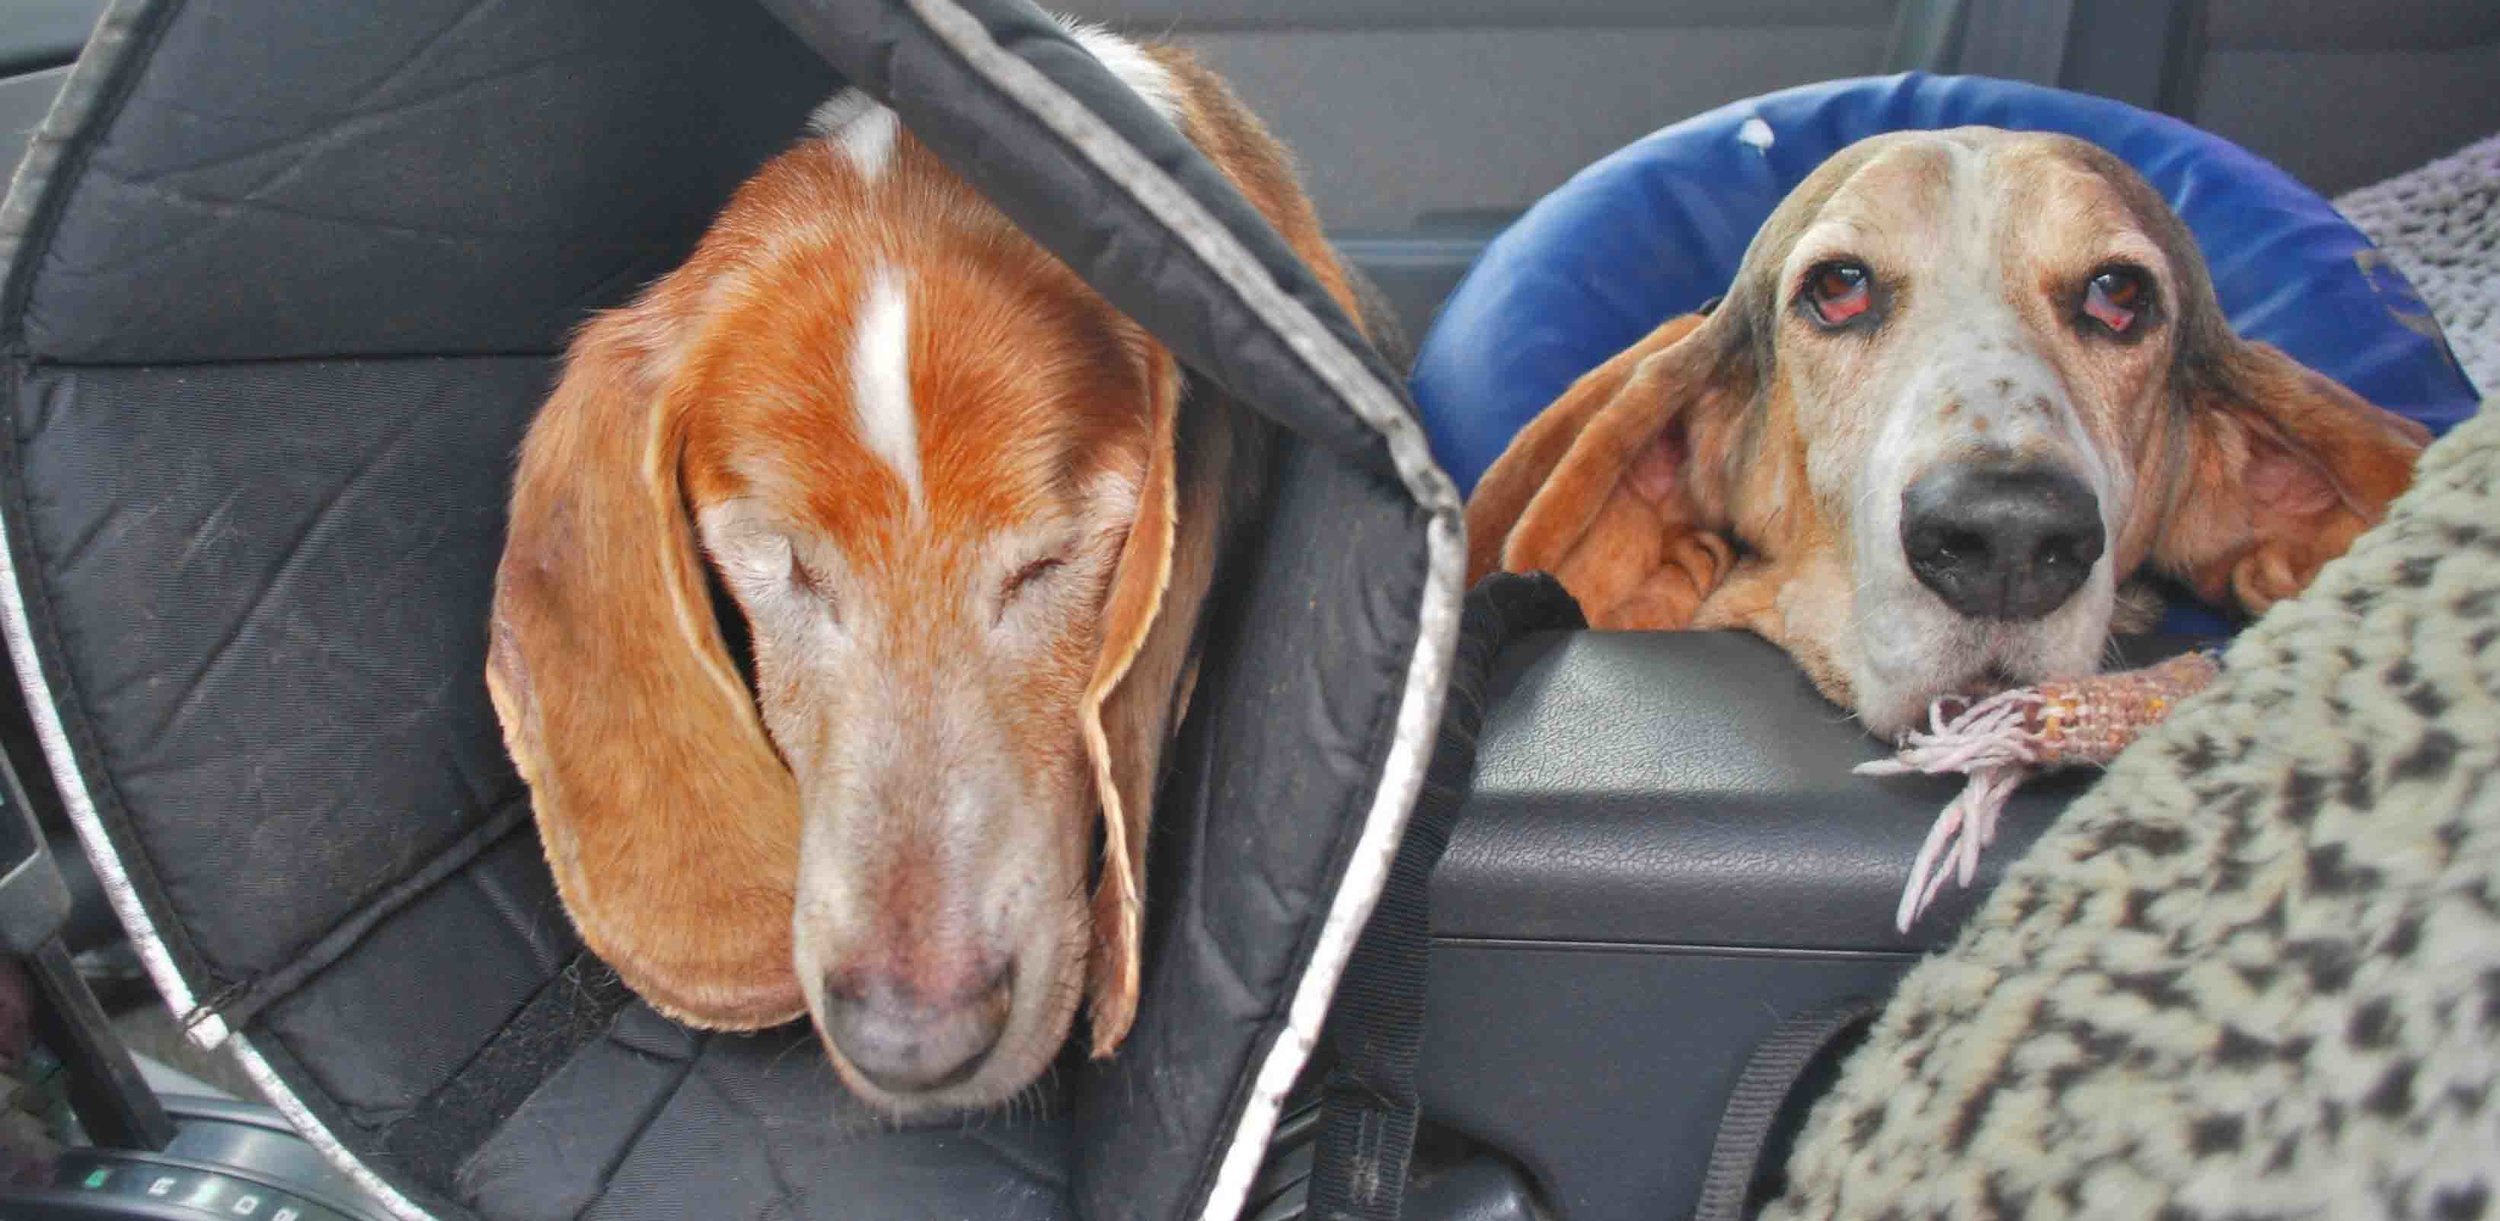 Doodle's brothers Dude and Elvis a few years back after they had tandem surgeries. Photo: (c) Barb Ayers, DogDiary.org